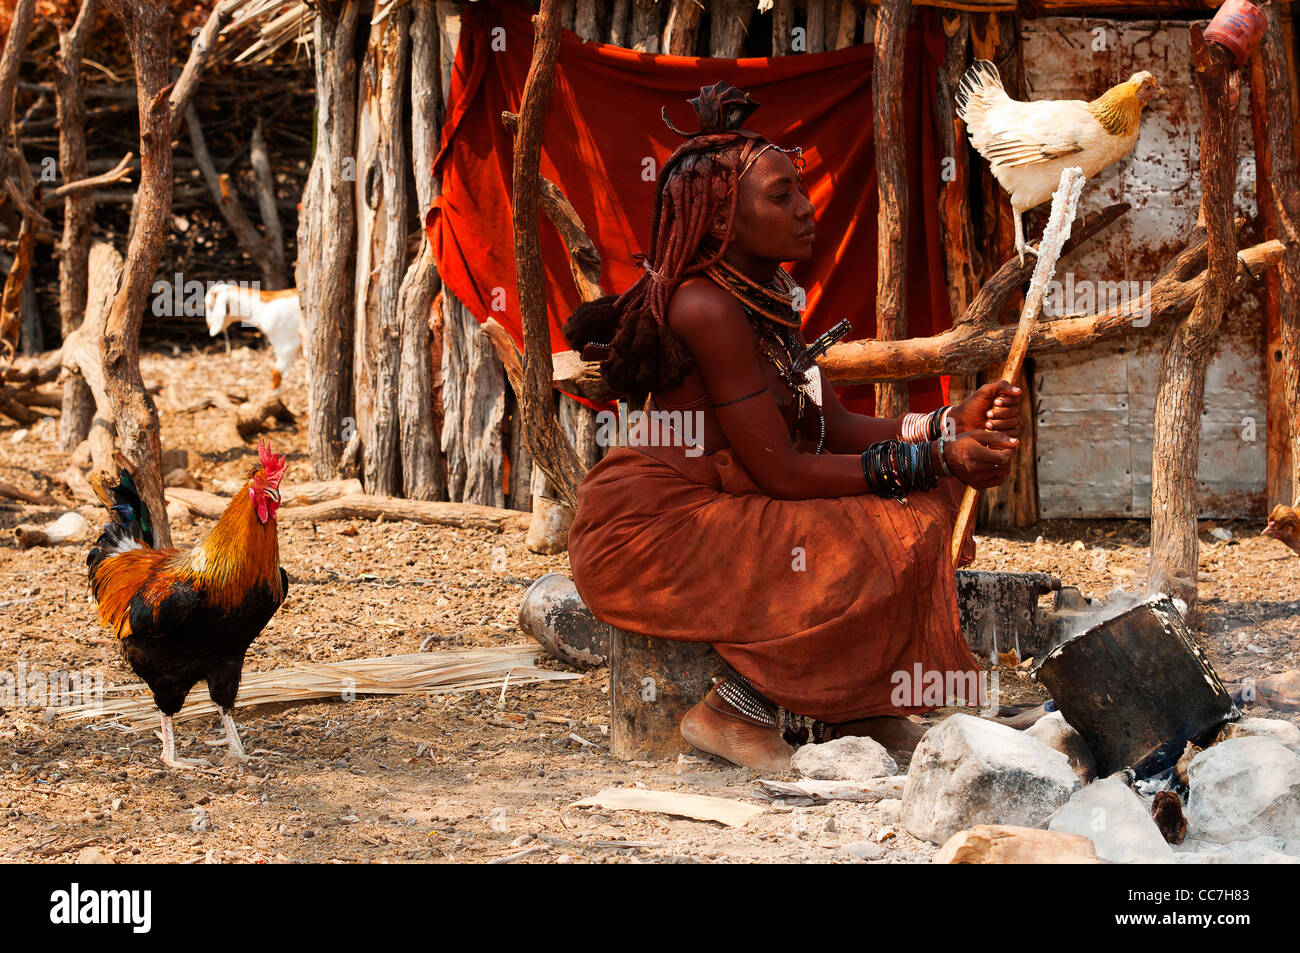 Himba woman cooking in his village near Epupa Falls, Kunene region, Northern Namibia - Stock Image